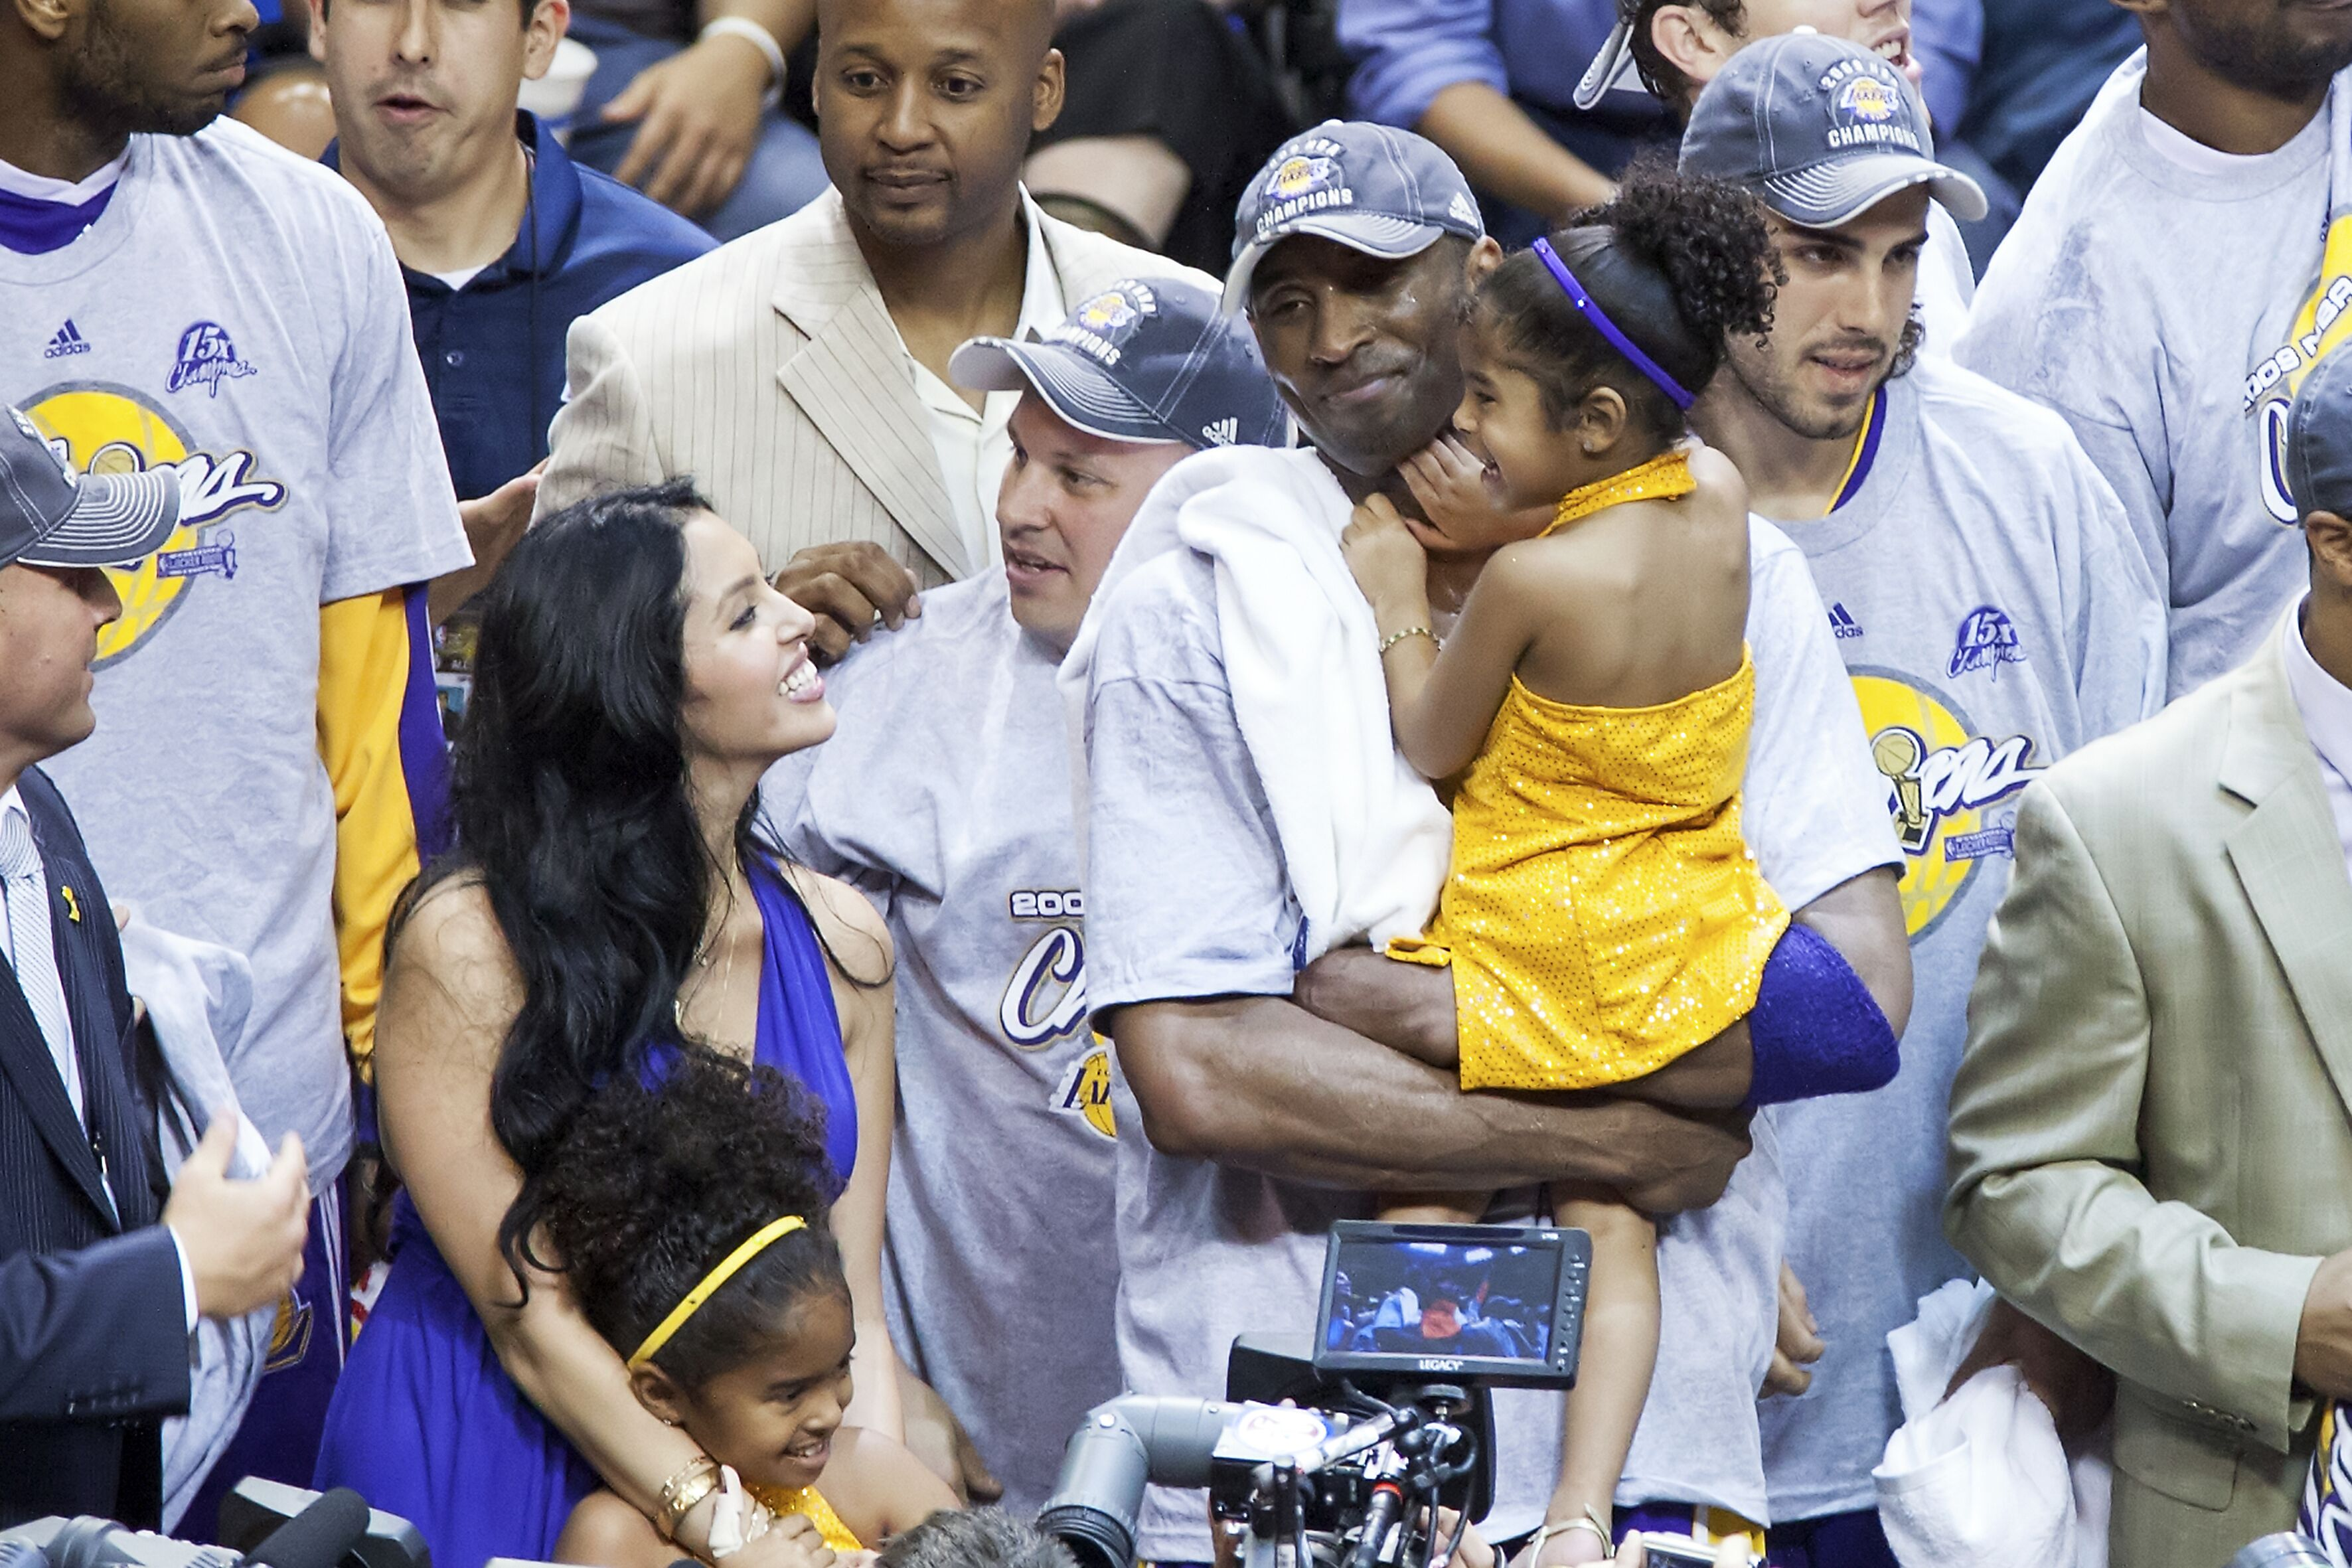 Kobe Bryant holds his daughter Gianna while standing next to her mother Vanessa after Game Five of the NBA Finals on June 14, 2009, in Orlando, Florida | Photo: Getty Images